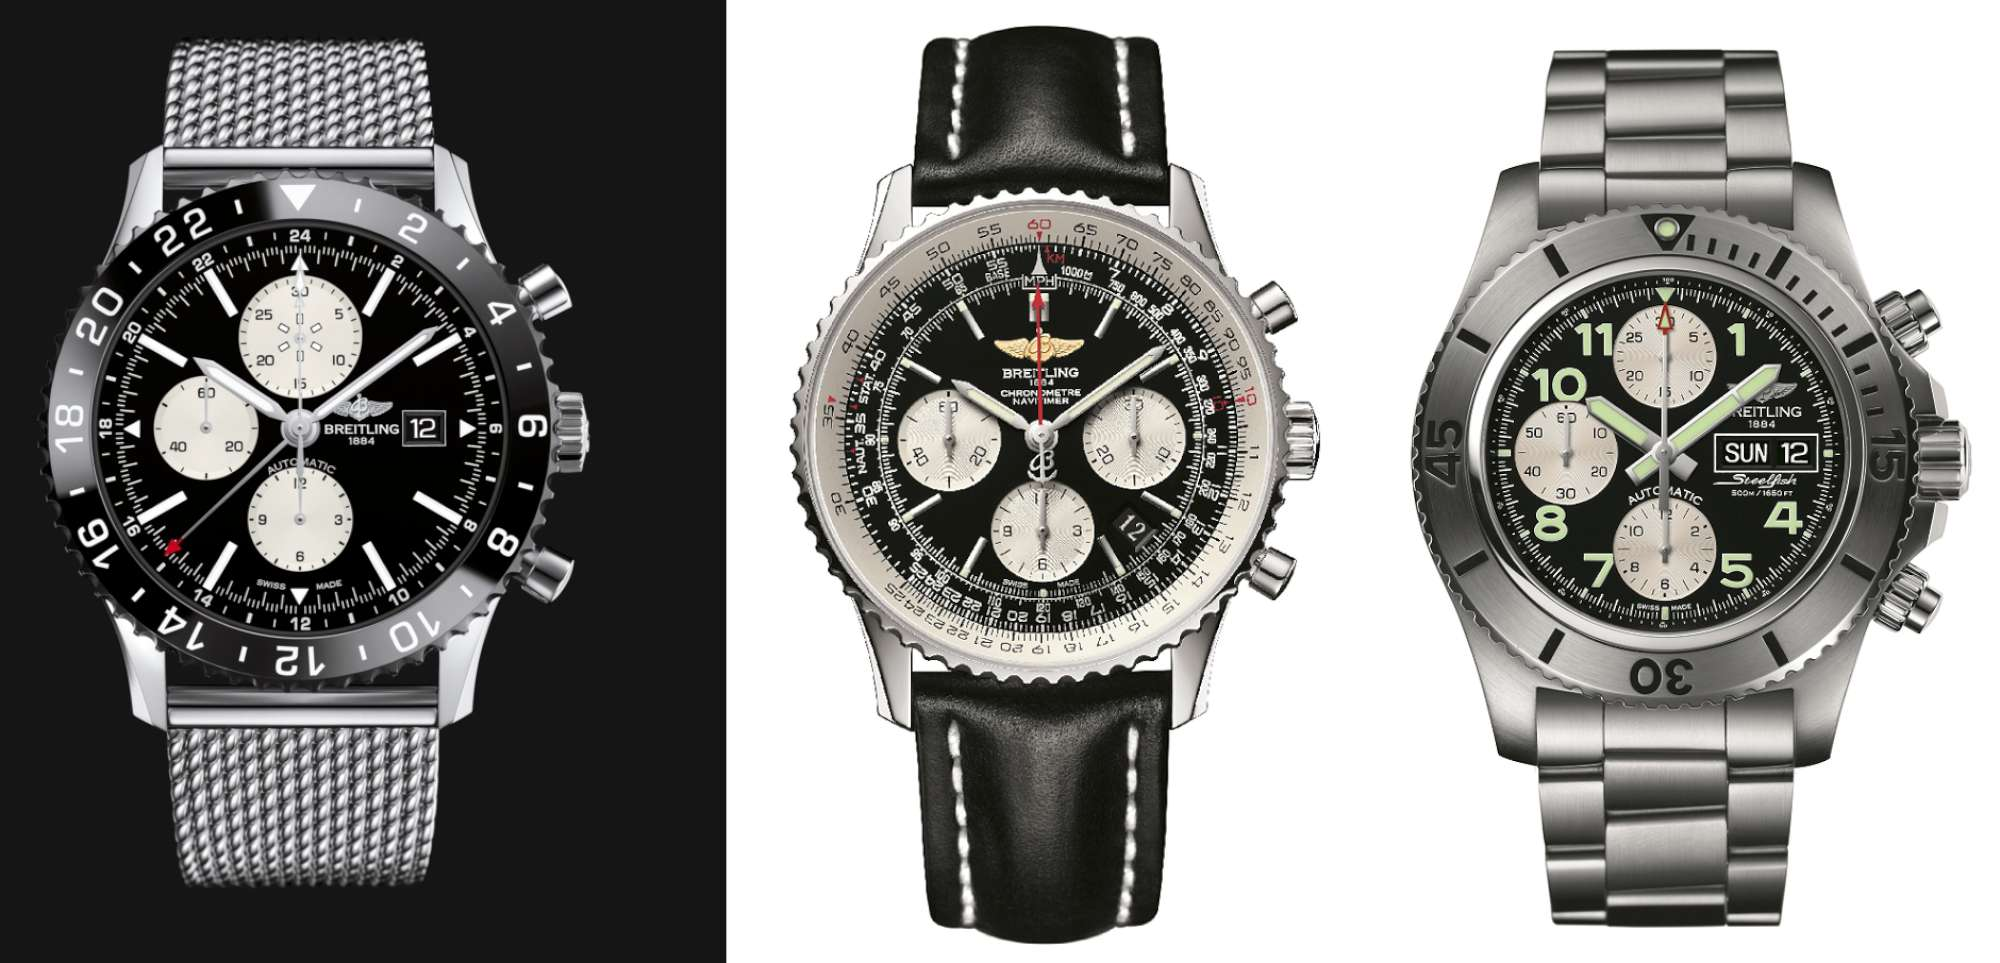 Comparison between the Chronoliner (left), the Navitimer (centre) and the Superocean Chronograph Steelfish (right)